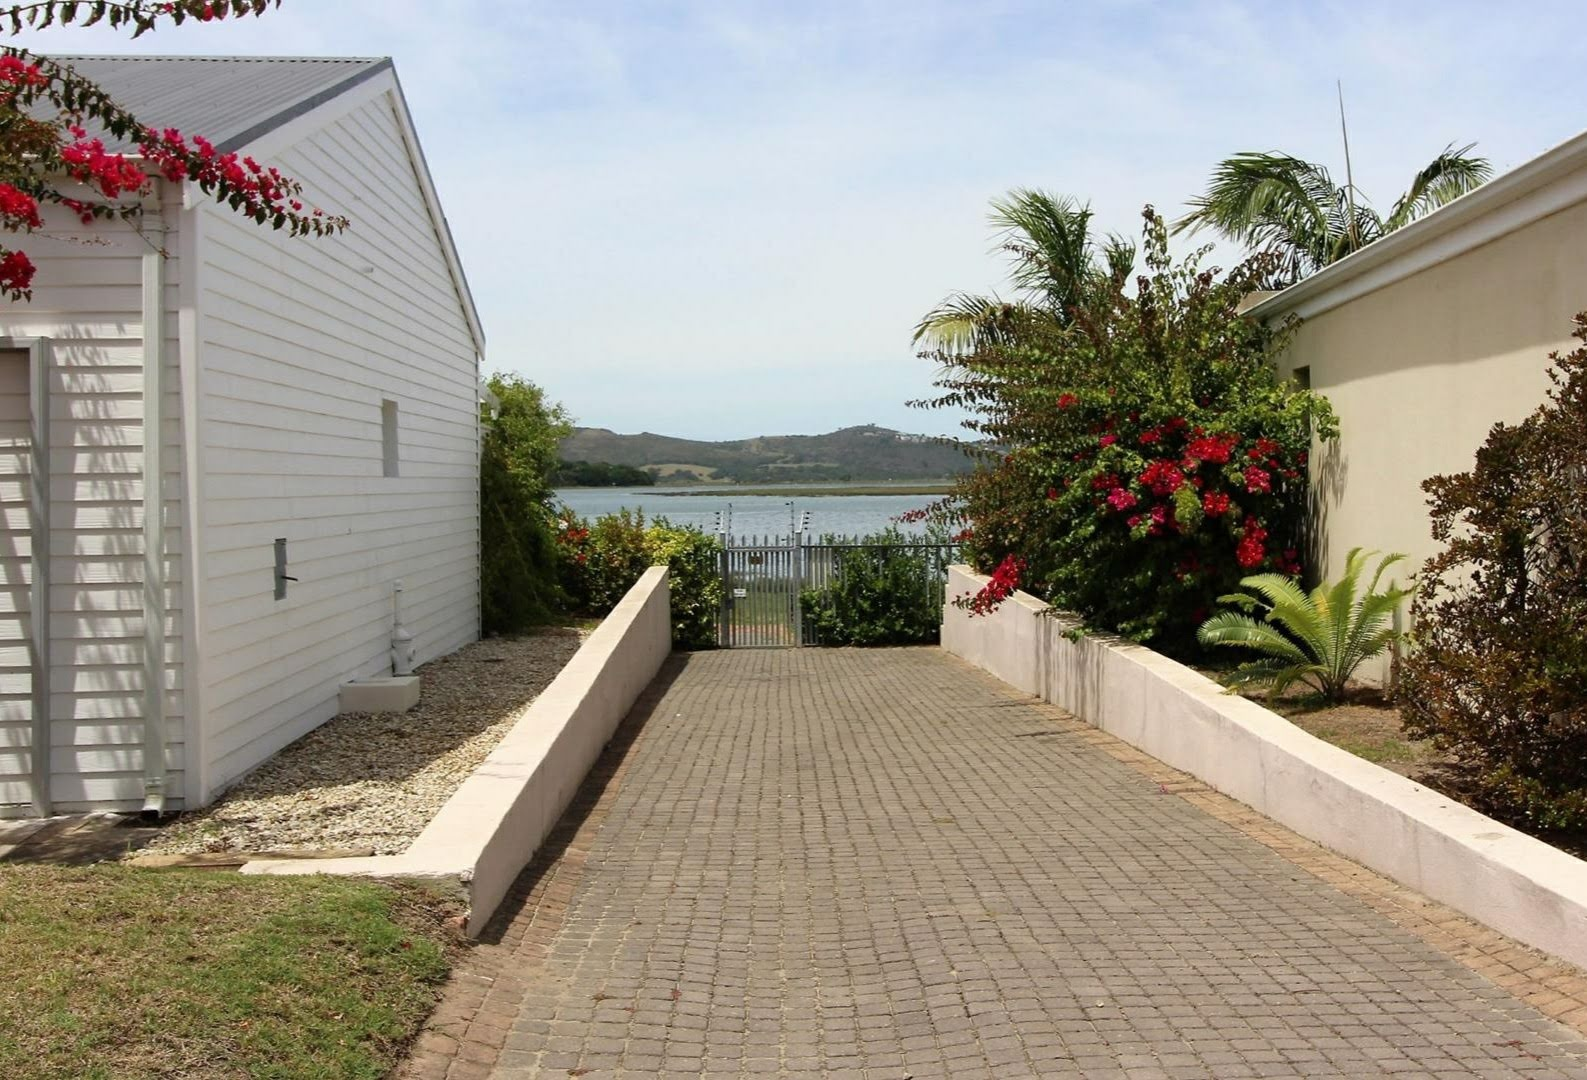 3 Bedroom Townhouse For Sale in Costa Sarda